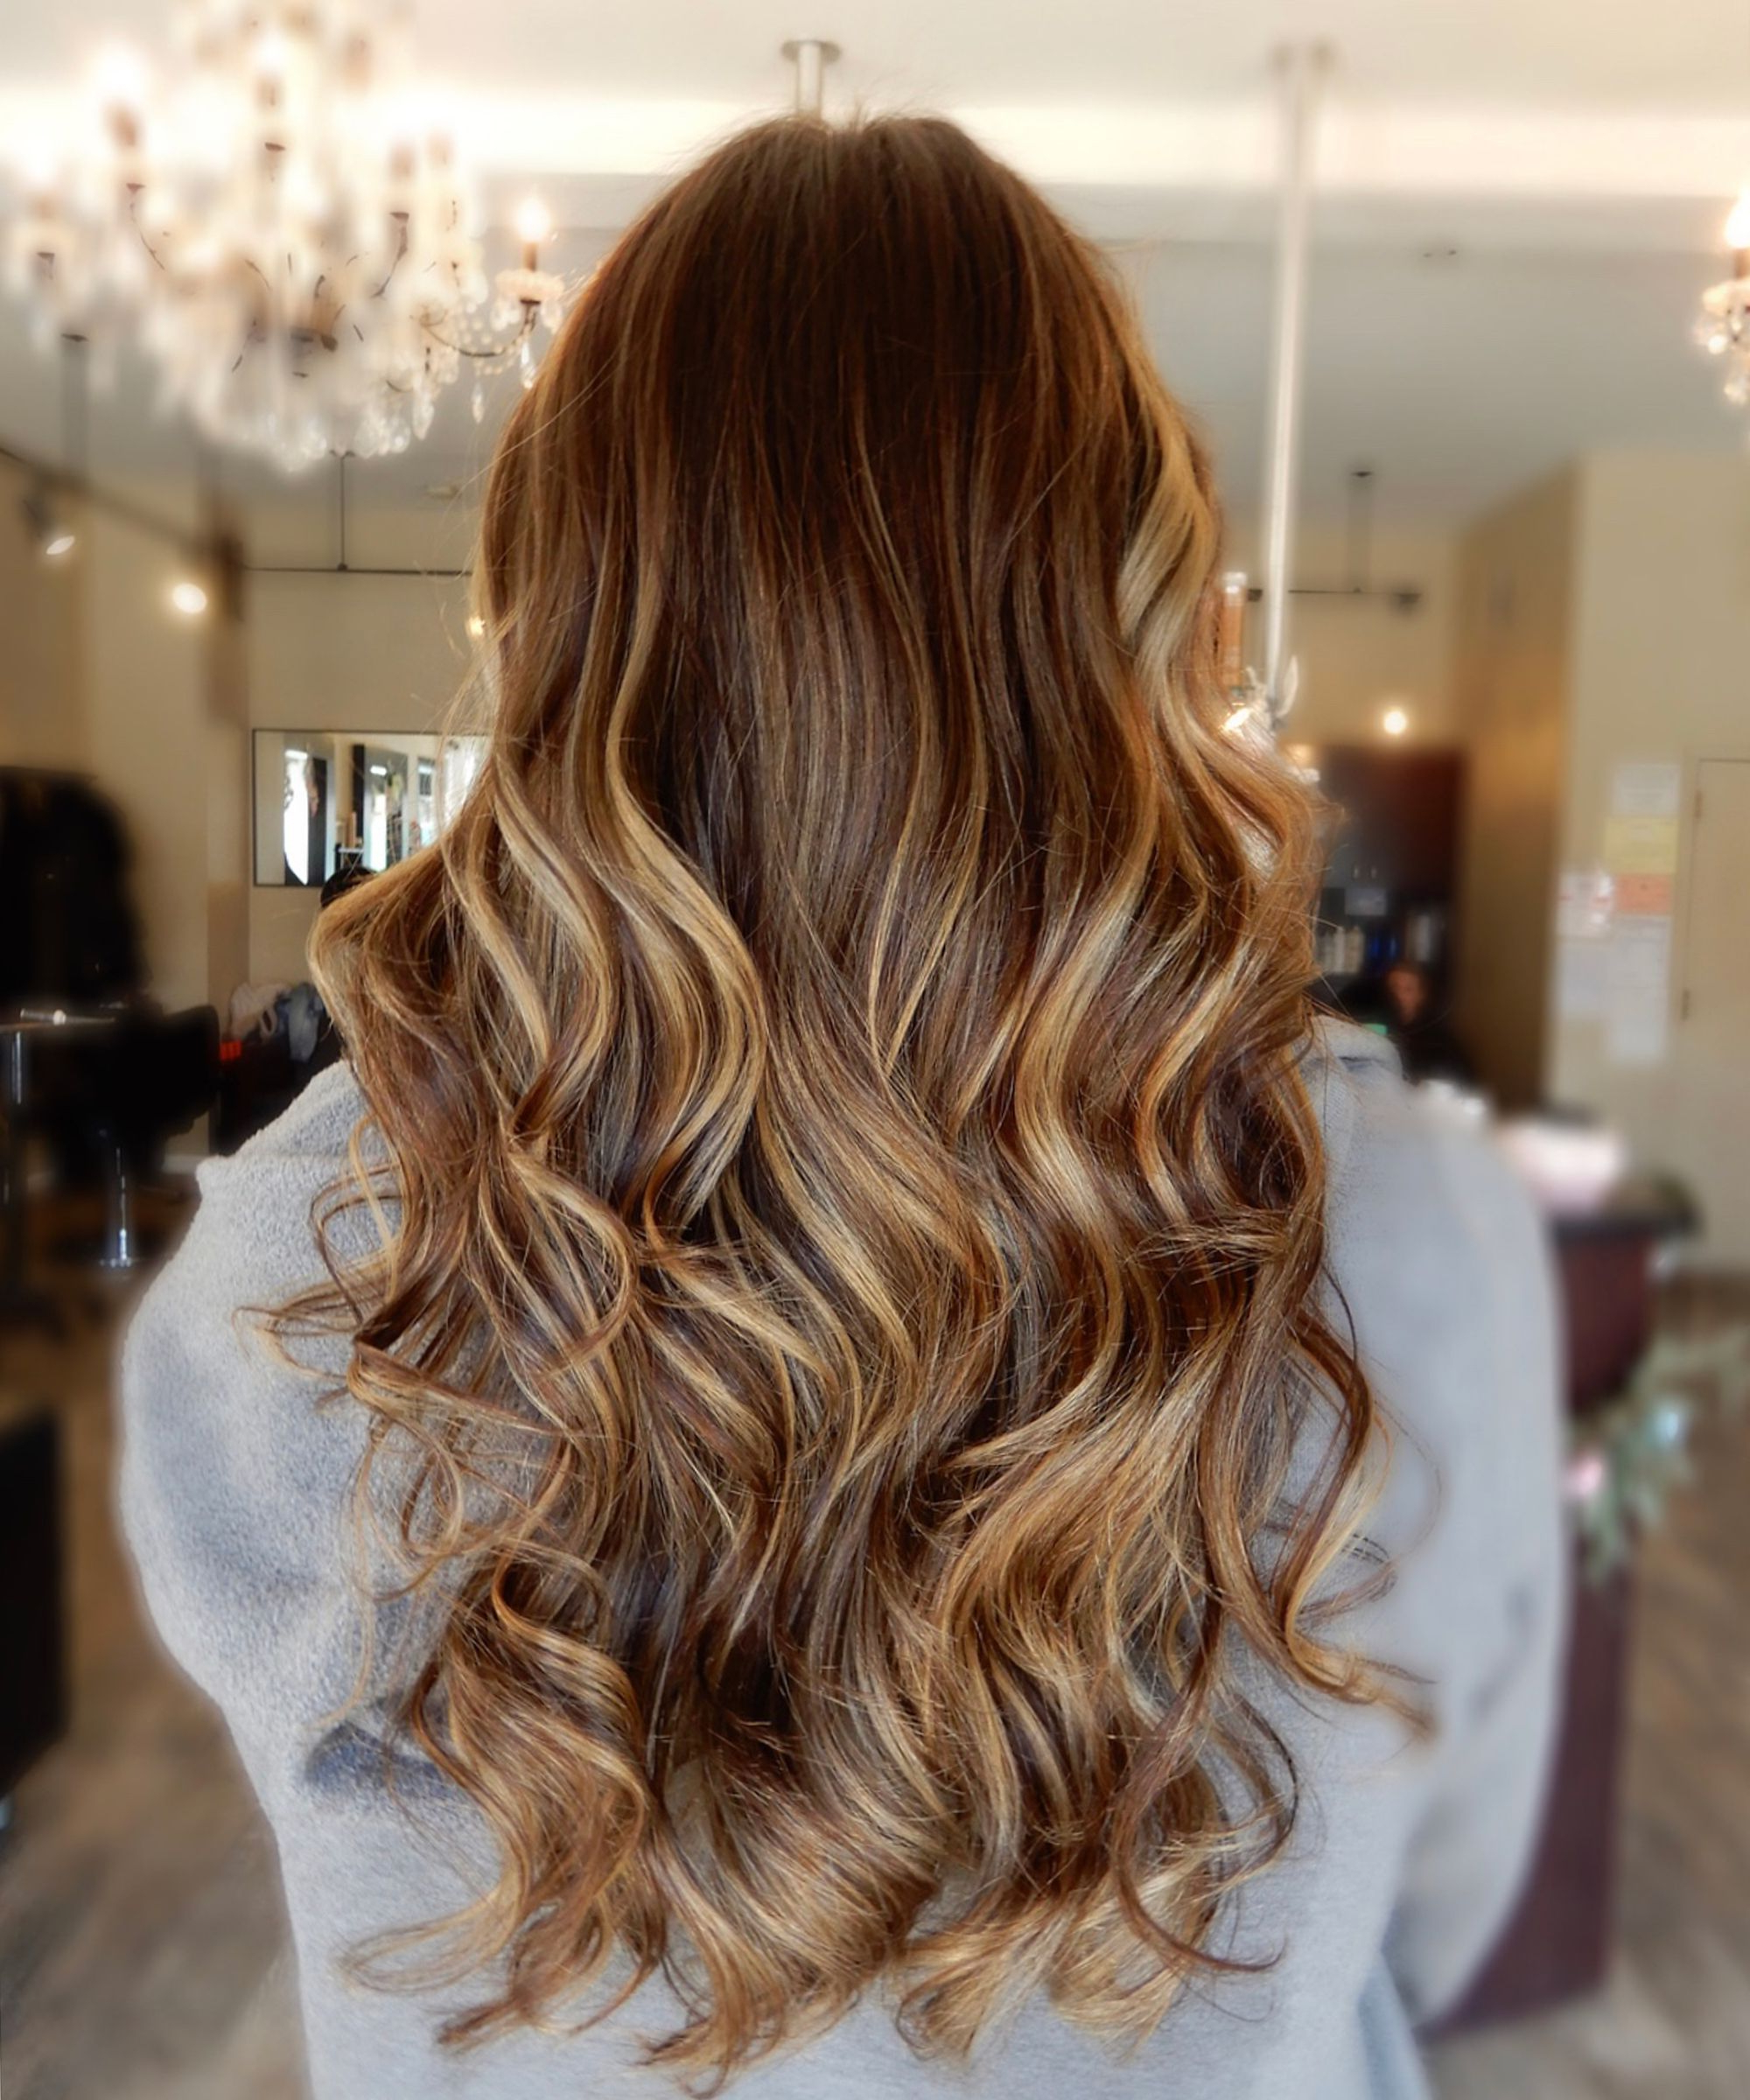 Fashionable Chopped Chocolate Brown Hairstyles For Long Hair Throughout Cold Brew Hair Color Is Trending For Fall  (View 8 of 20)